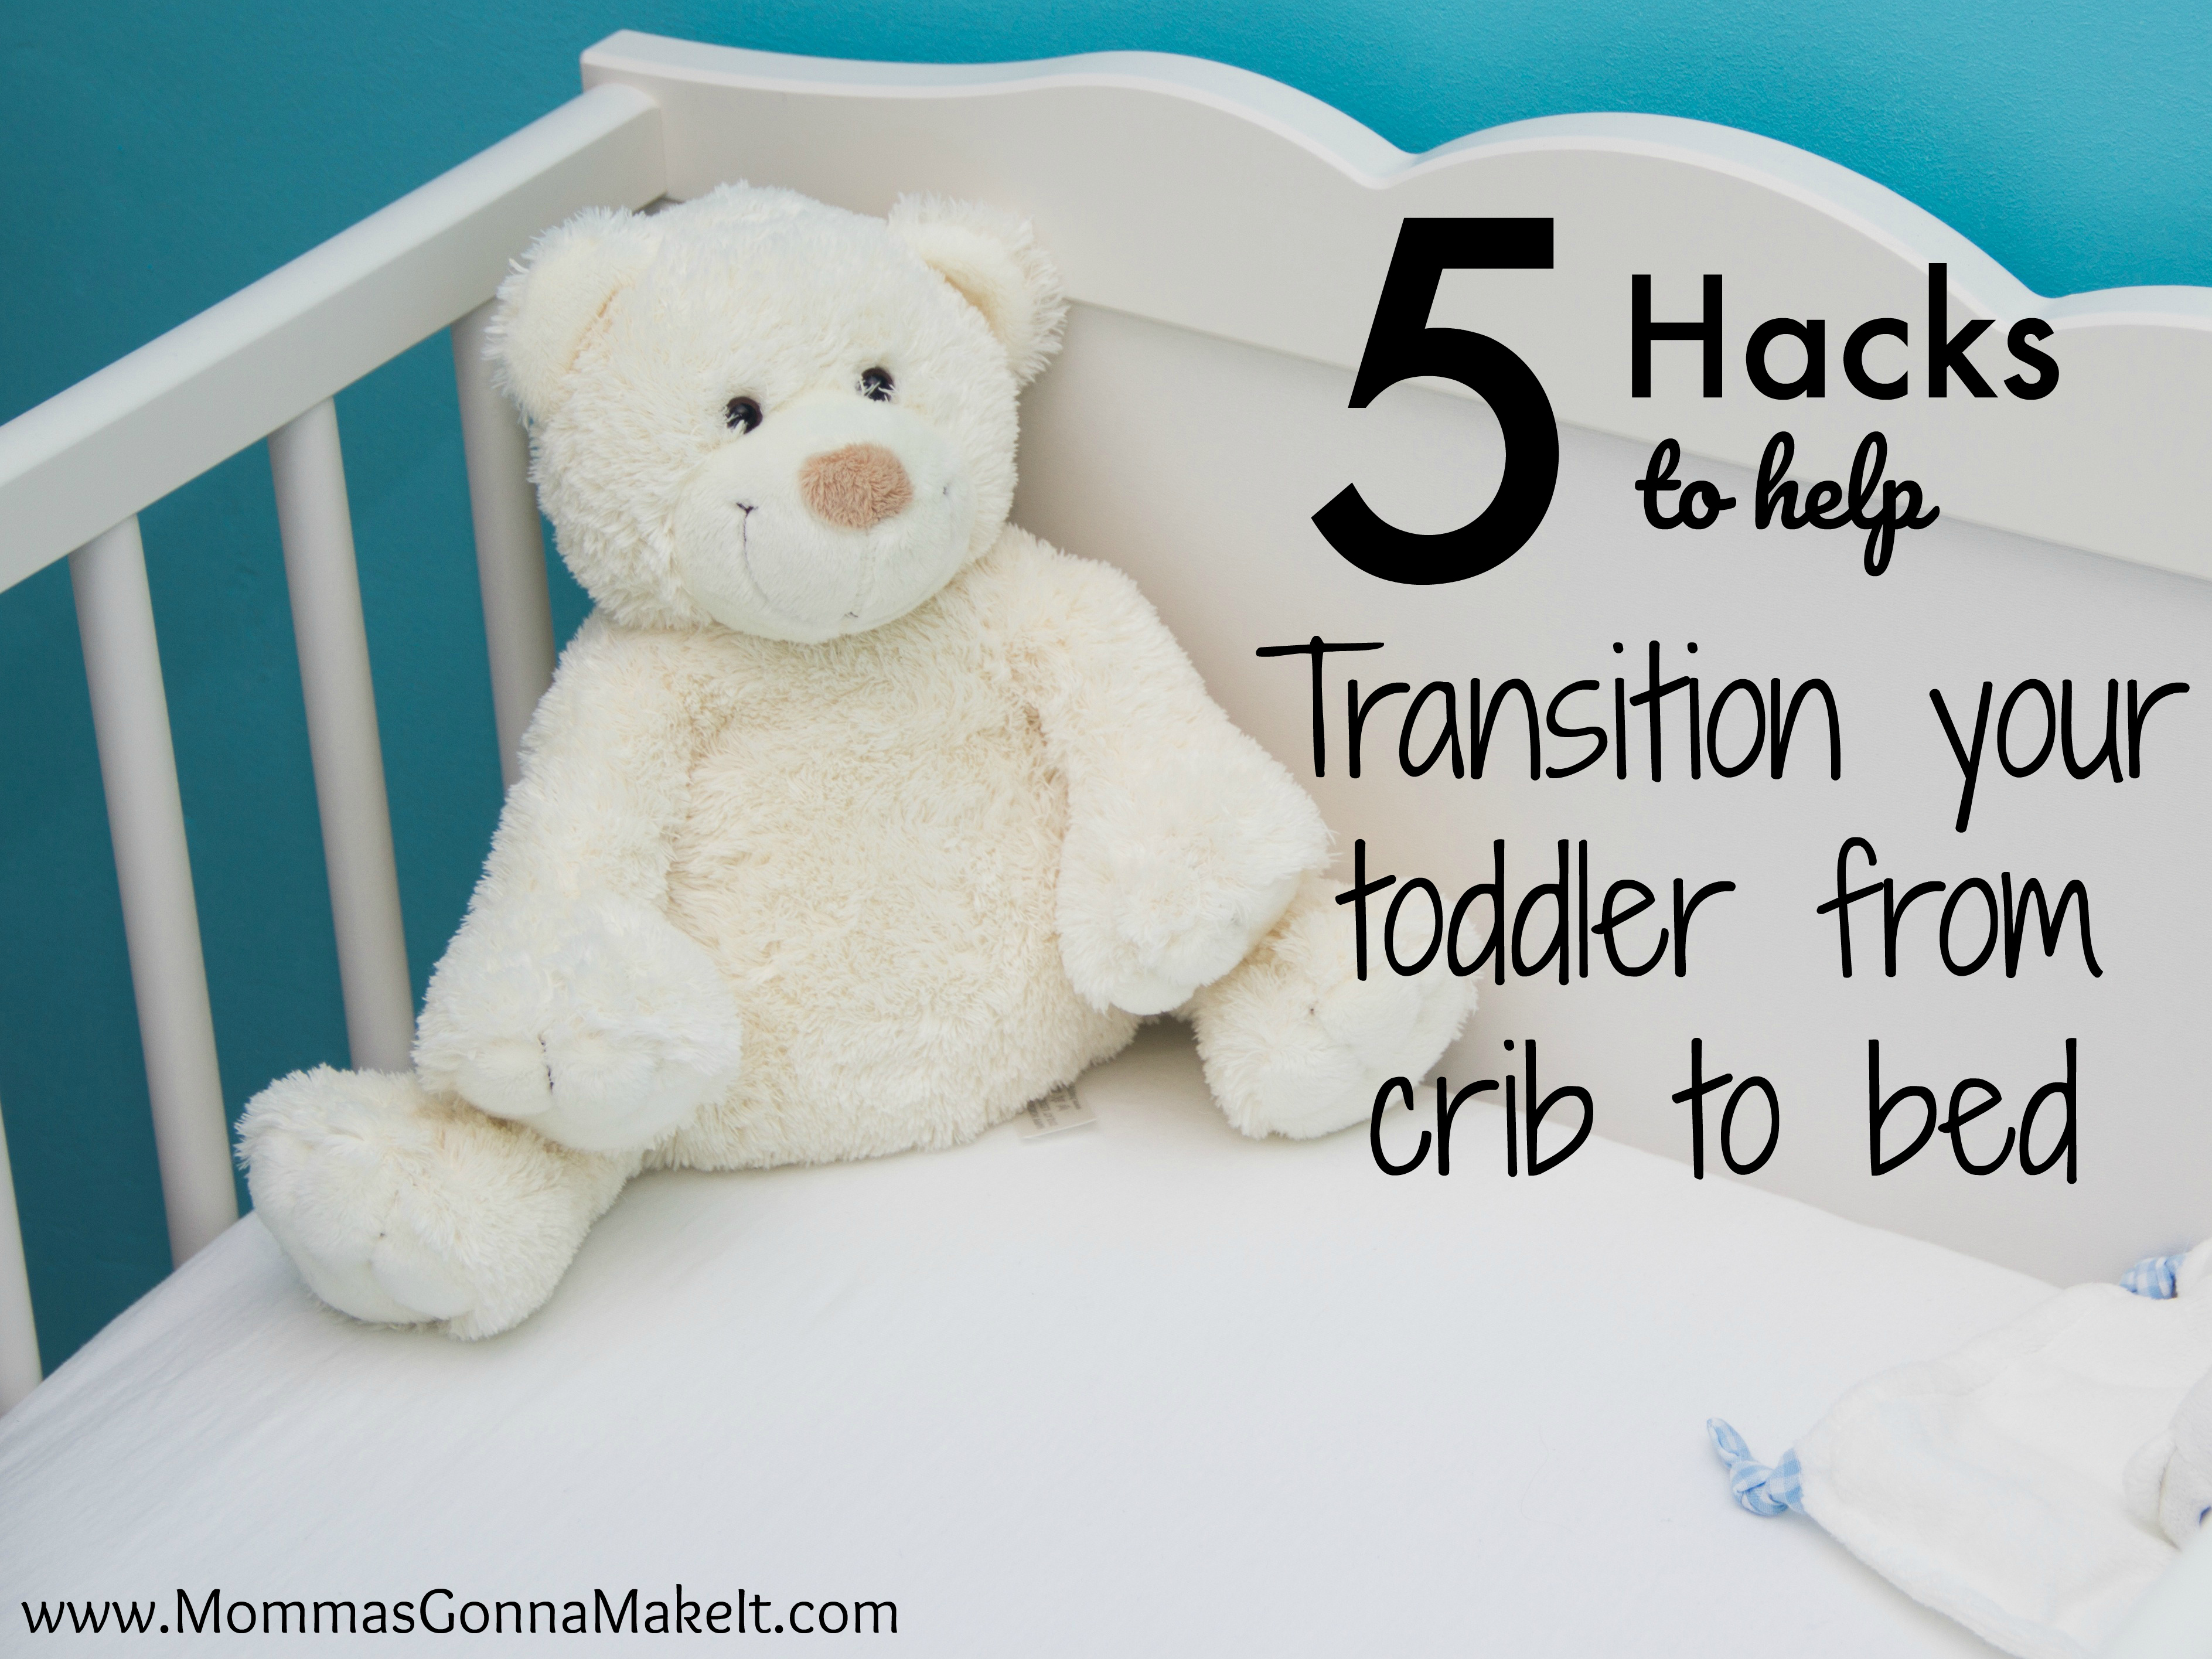 5 Hacks to transition your toddler from crib to bed